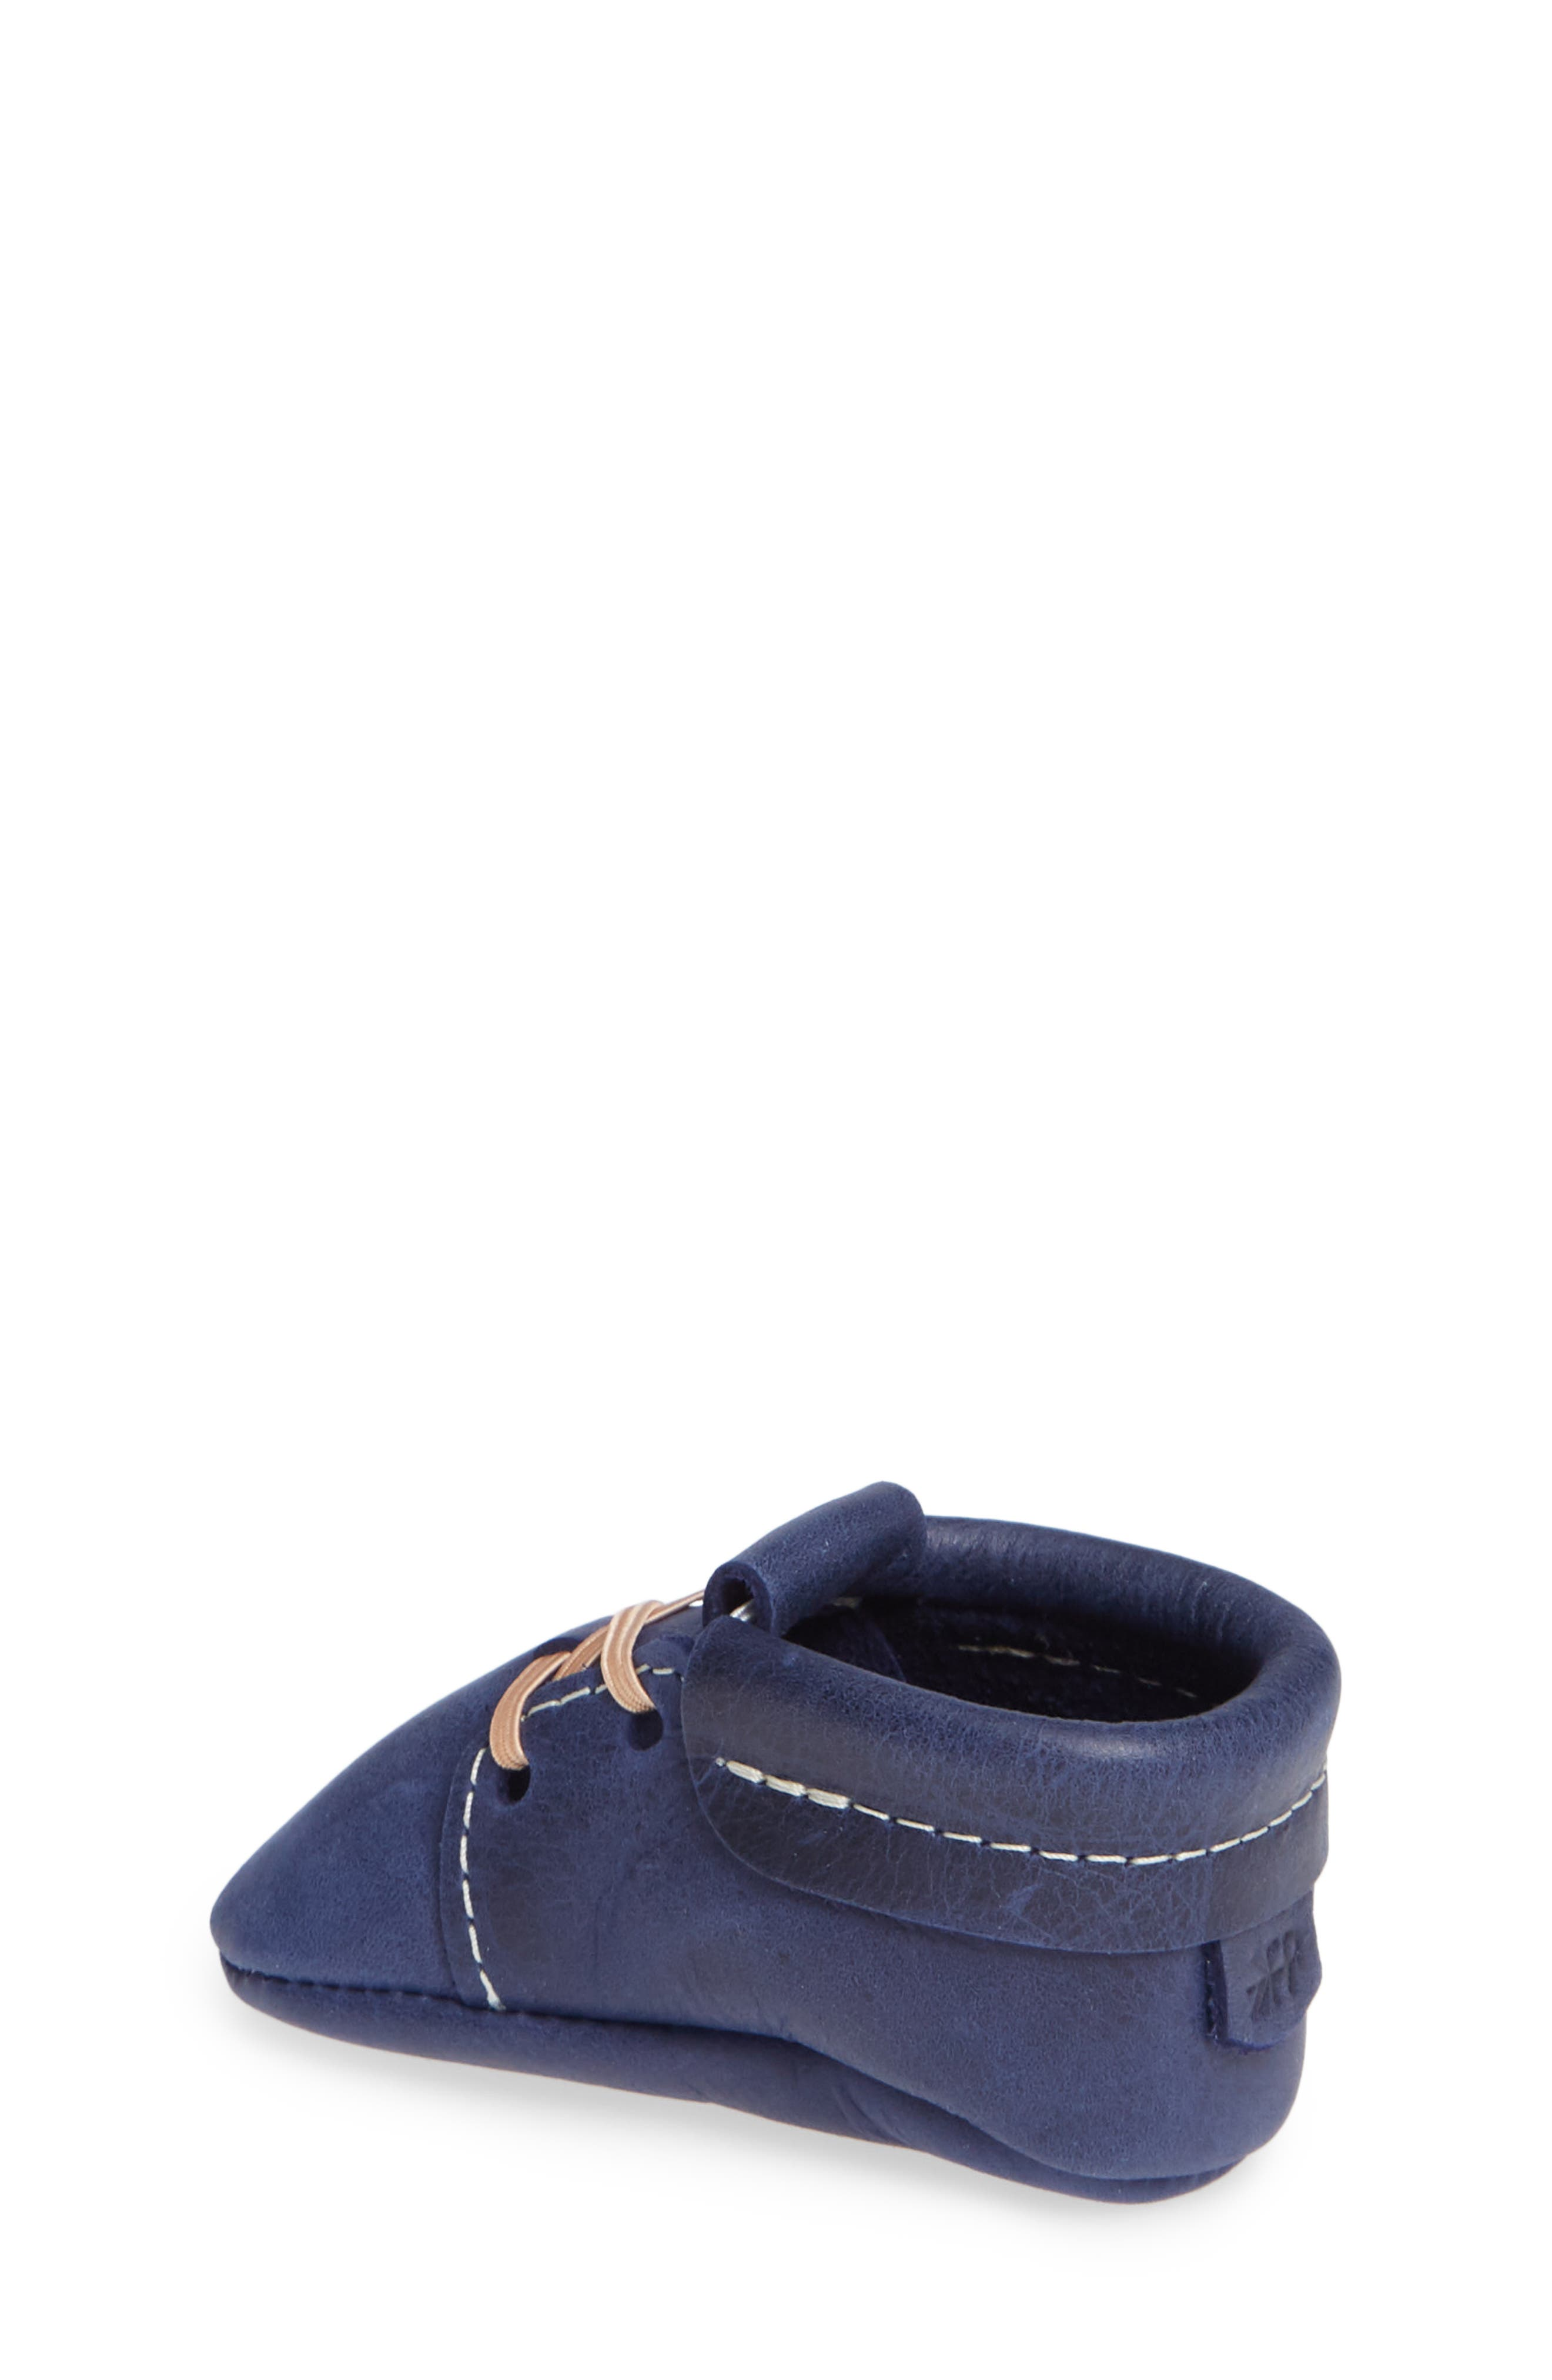 City Leather Moccasin,                             Alternate thumbnail 2, color,                             410